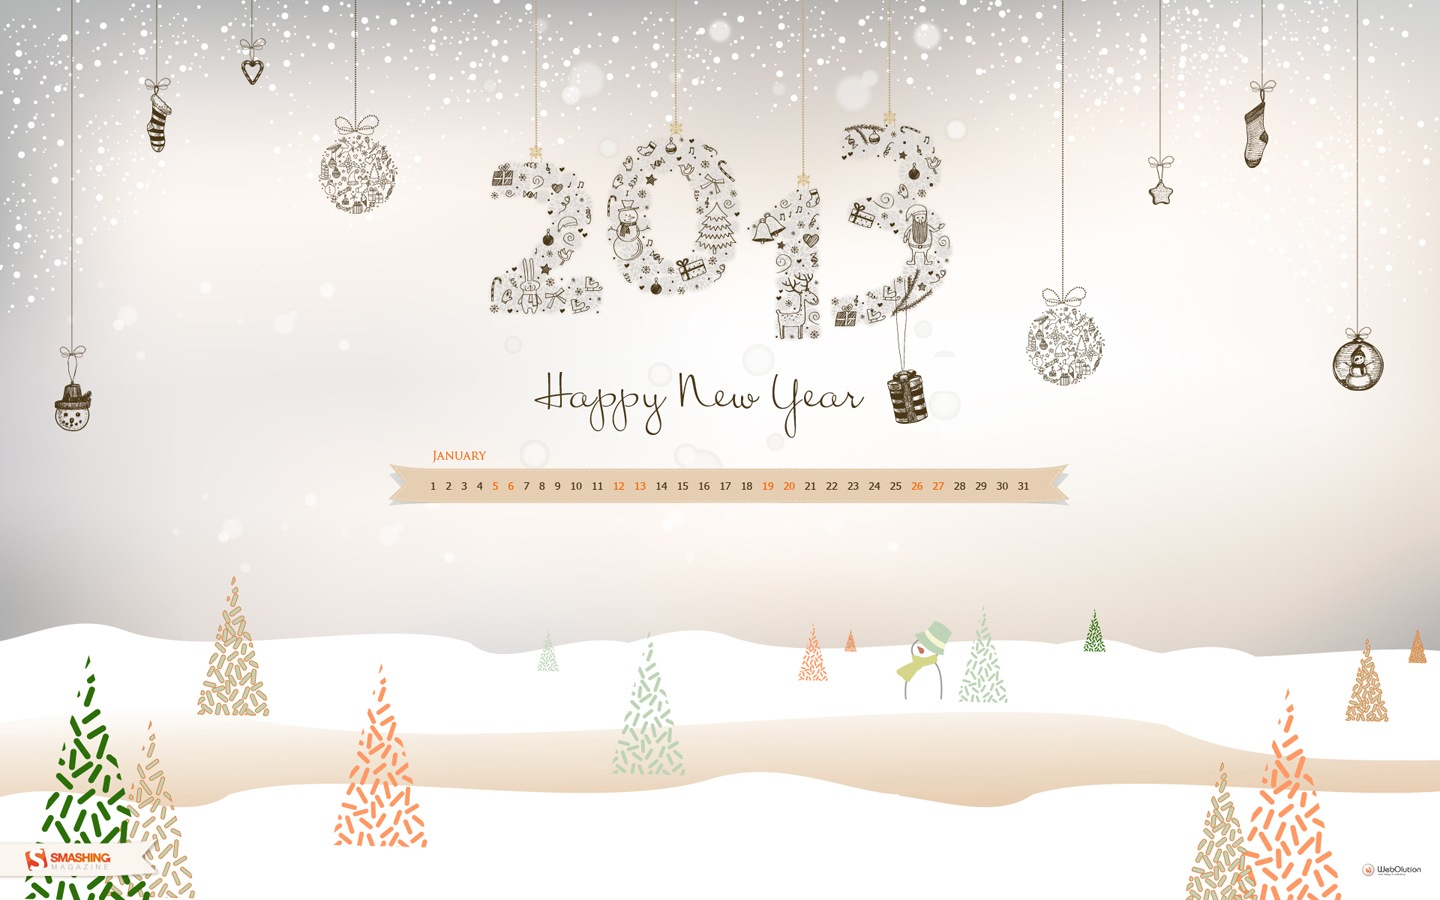 In January Calendar Wallpaper 32124